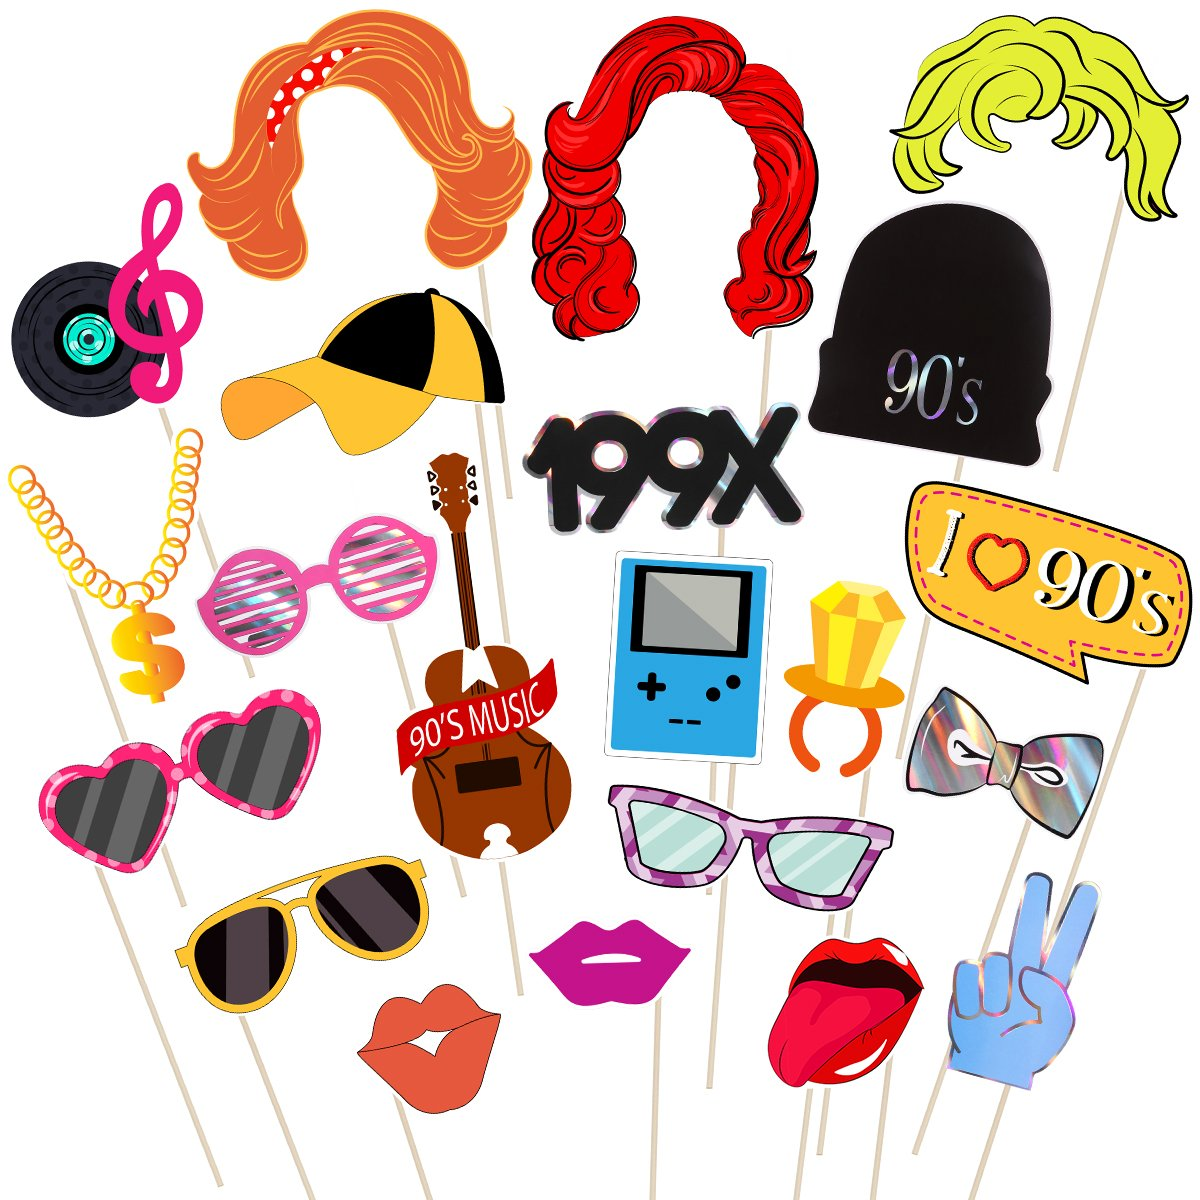 Amosfun 1990's Party Photo Booth Props Kit 90's Bithday Photo Props on a Stick Creative Party Decoration Supplies,Pack of 21